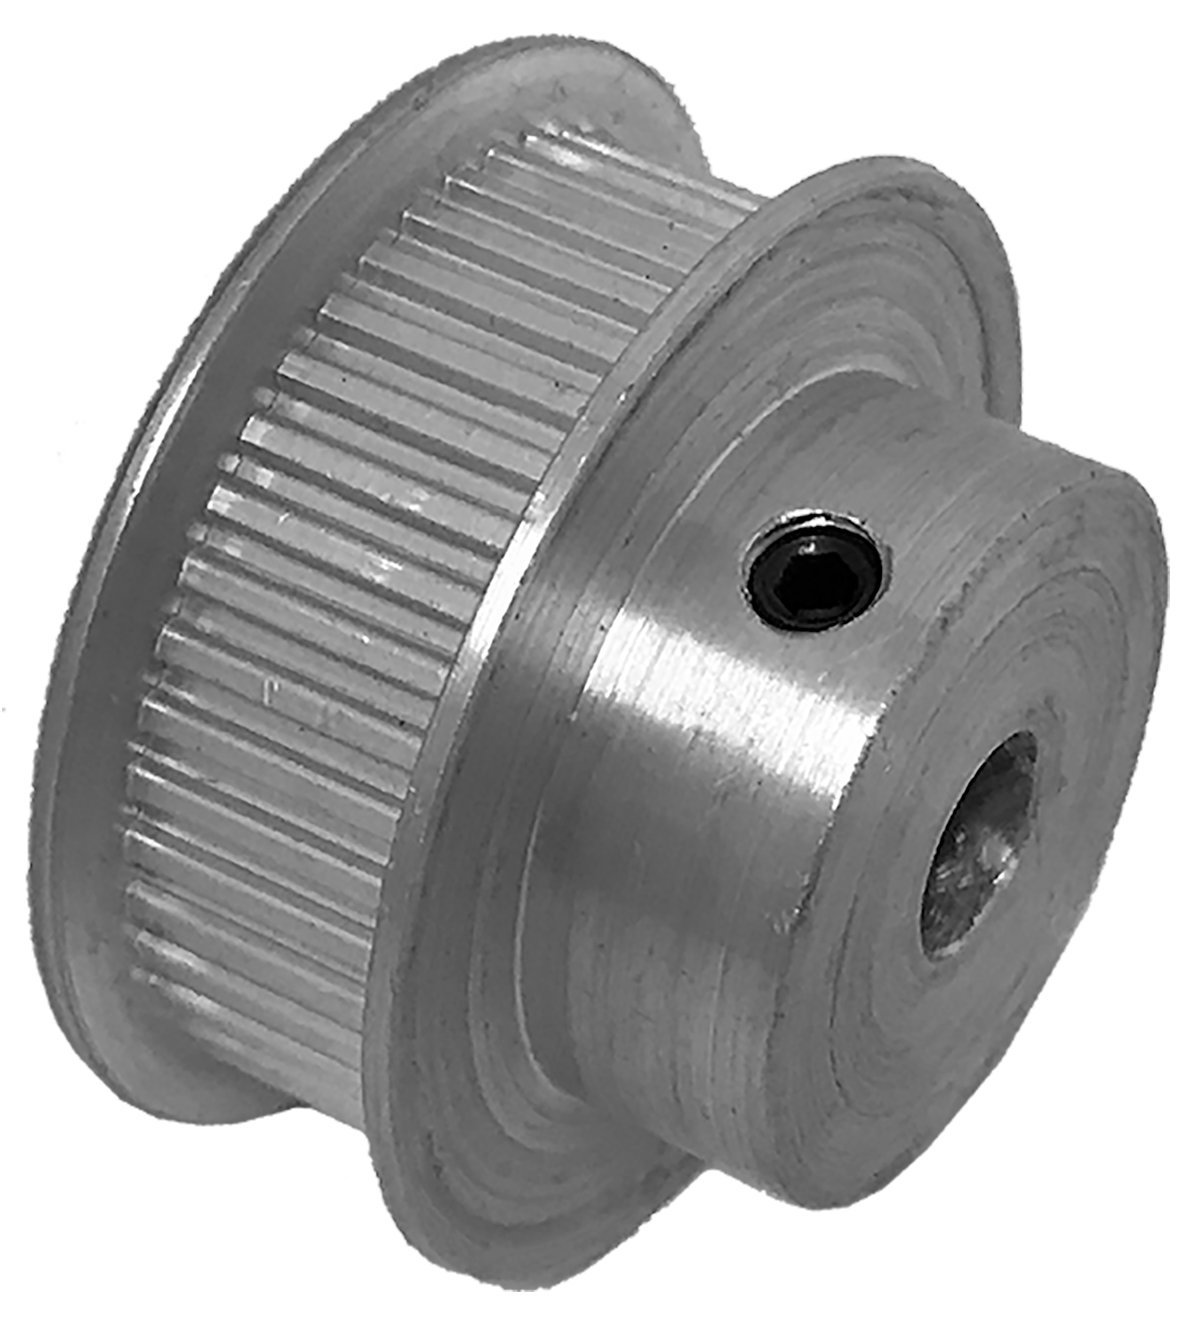 44LT312-6FA3 - Aluminum Imperial Pitch Pulleys